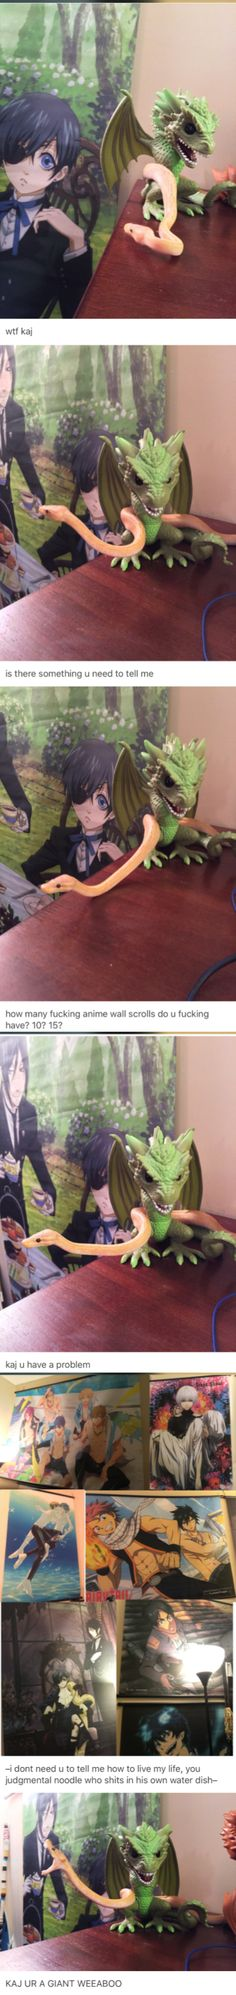 my roommate is an asshole :( weeaboo anime wall scrolls black butler game of thrones free! fairy tail blue exorcist tokyo ghoul ball python asshole snek